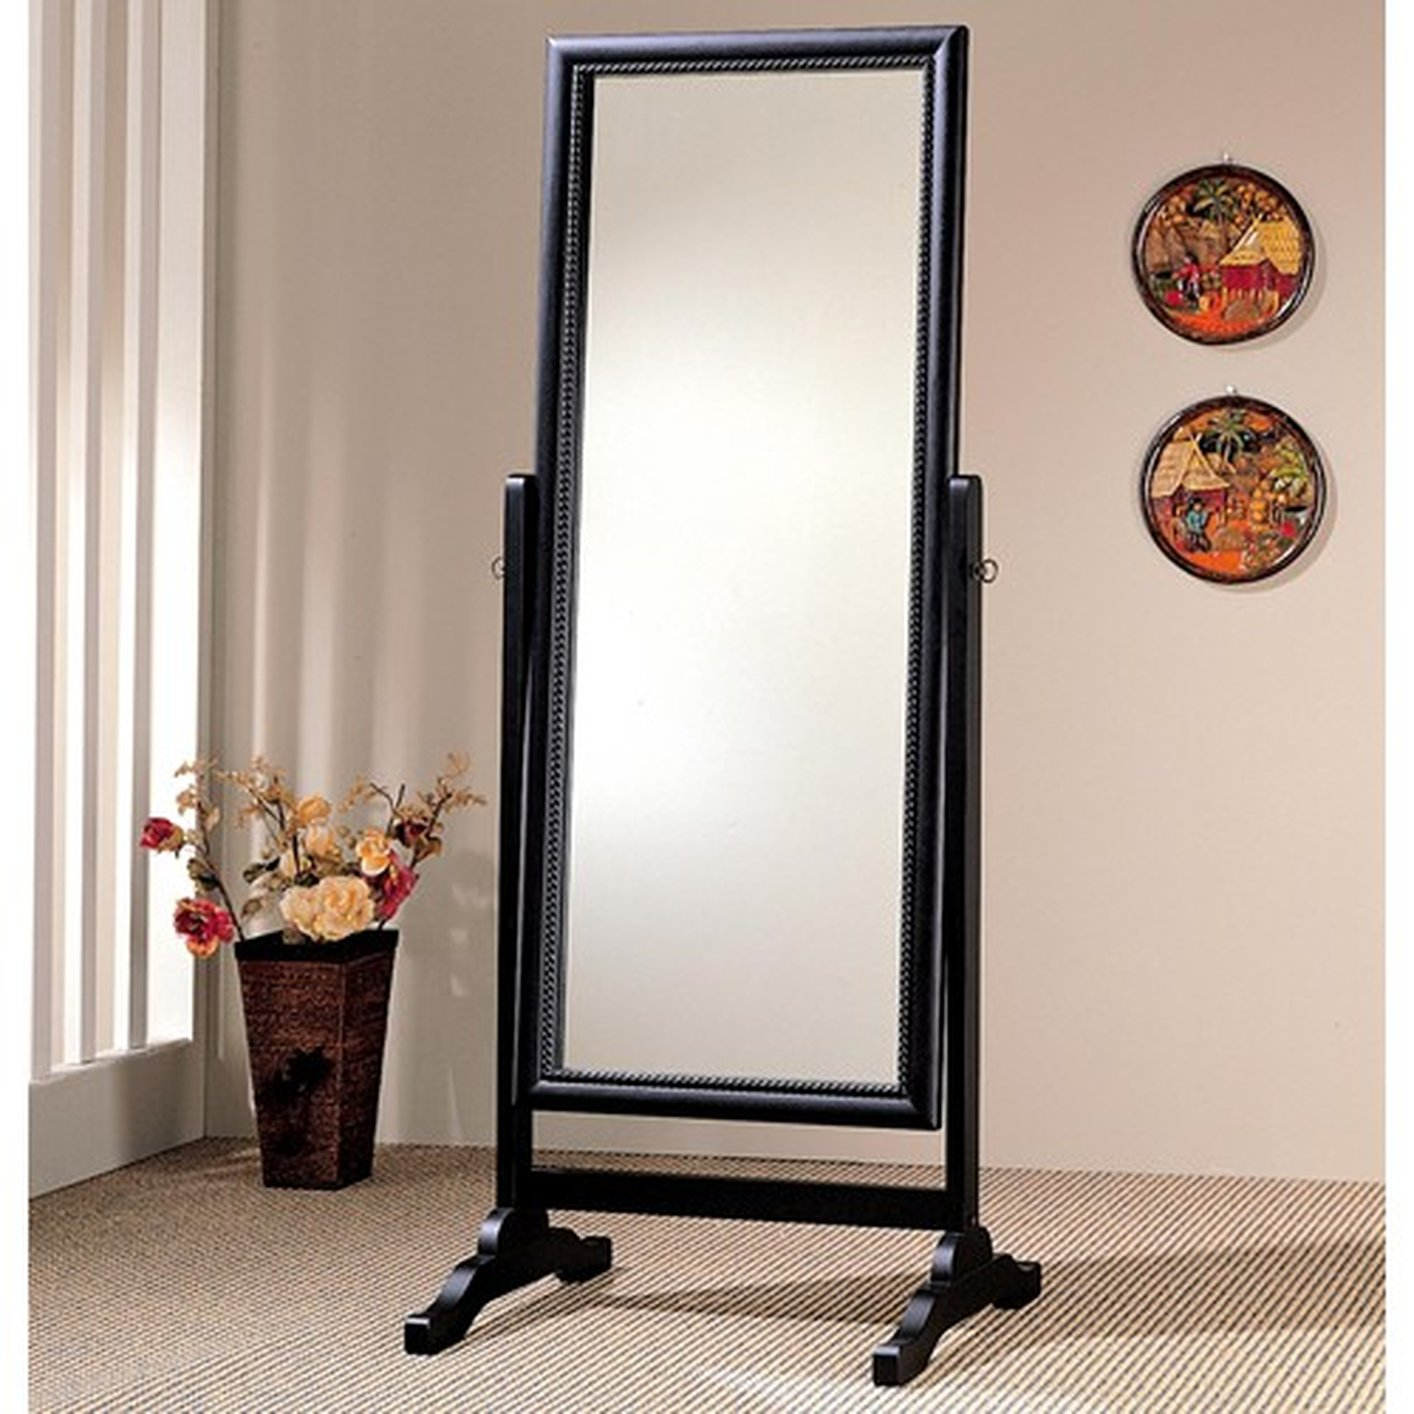 Black glass floor mirror steal a sofa furniture outlet for Glass floor mirror